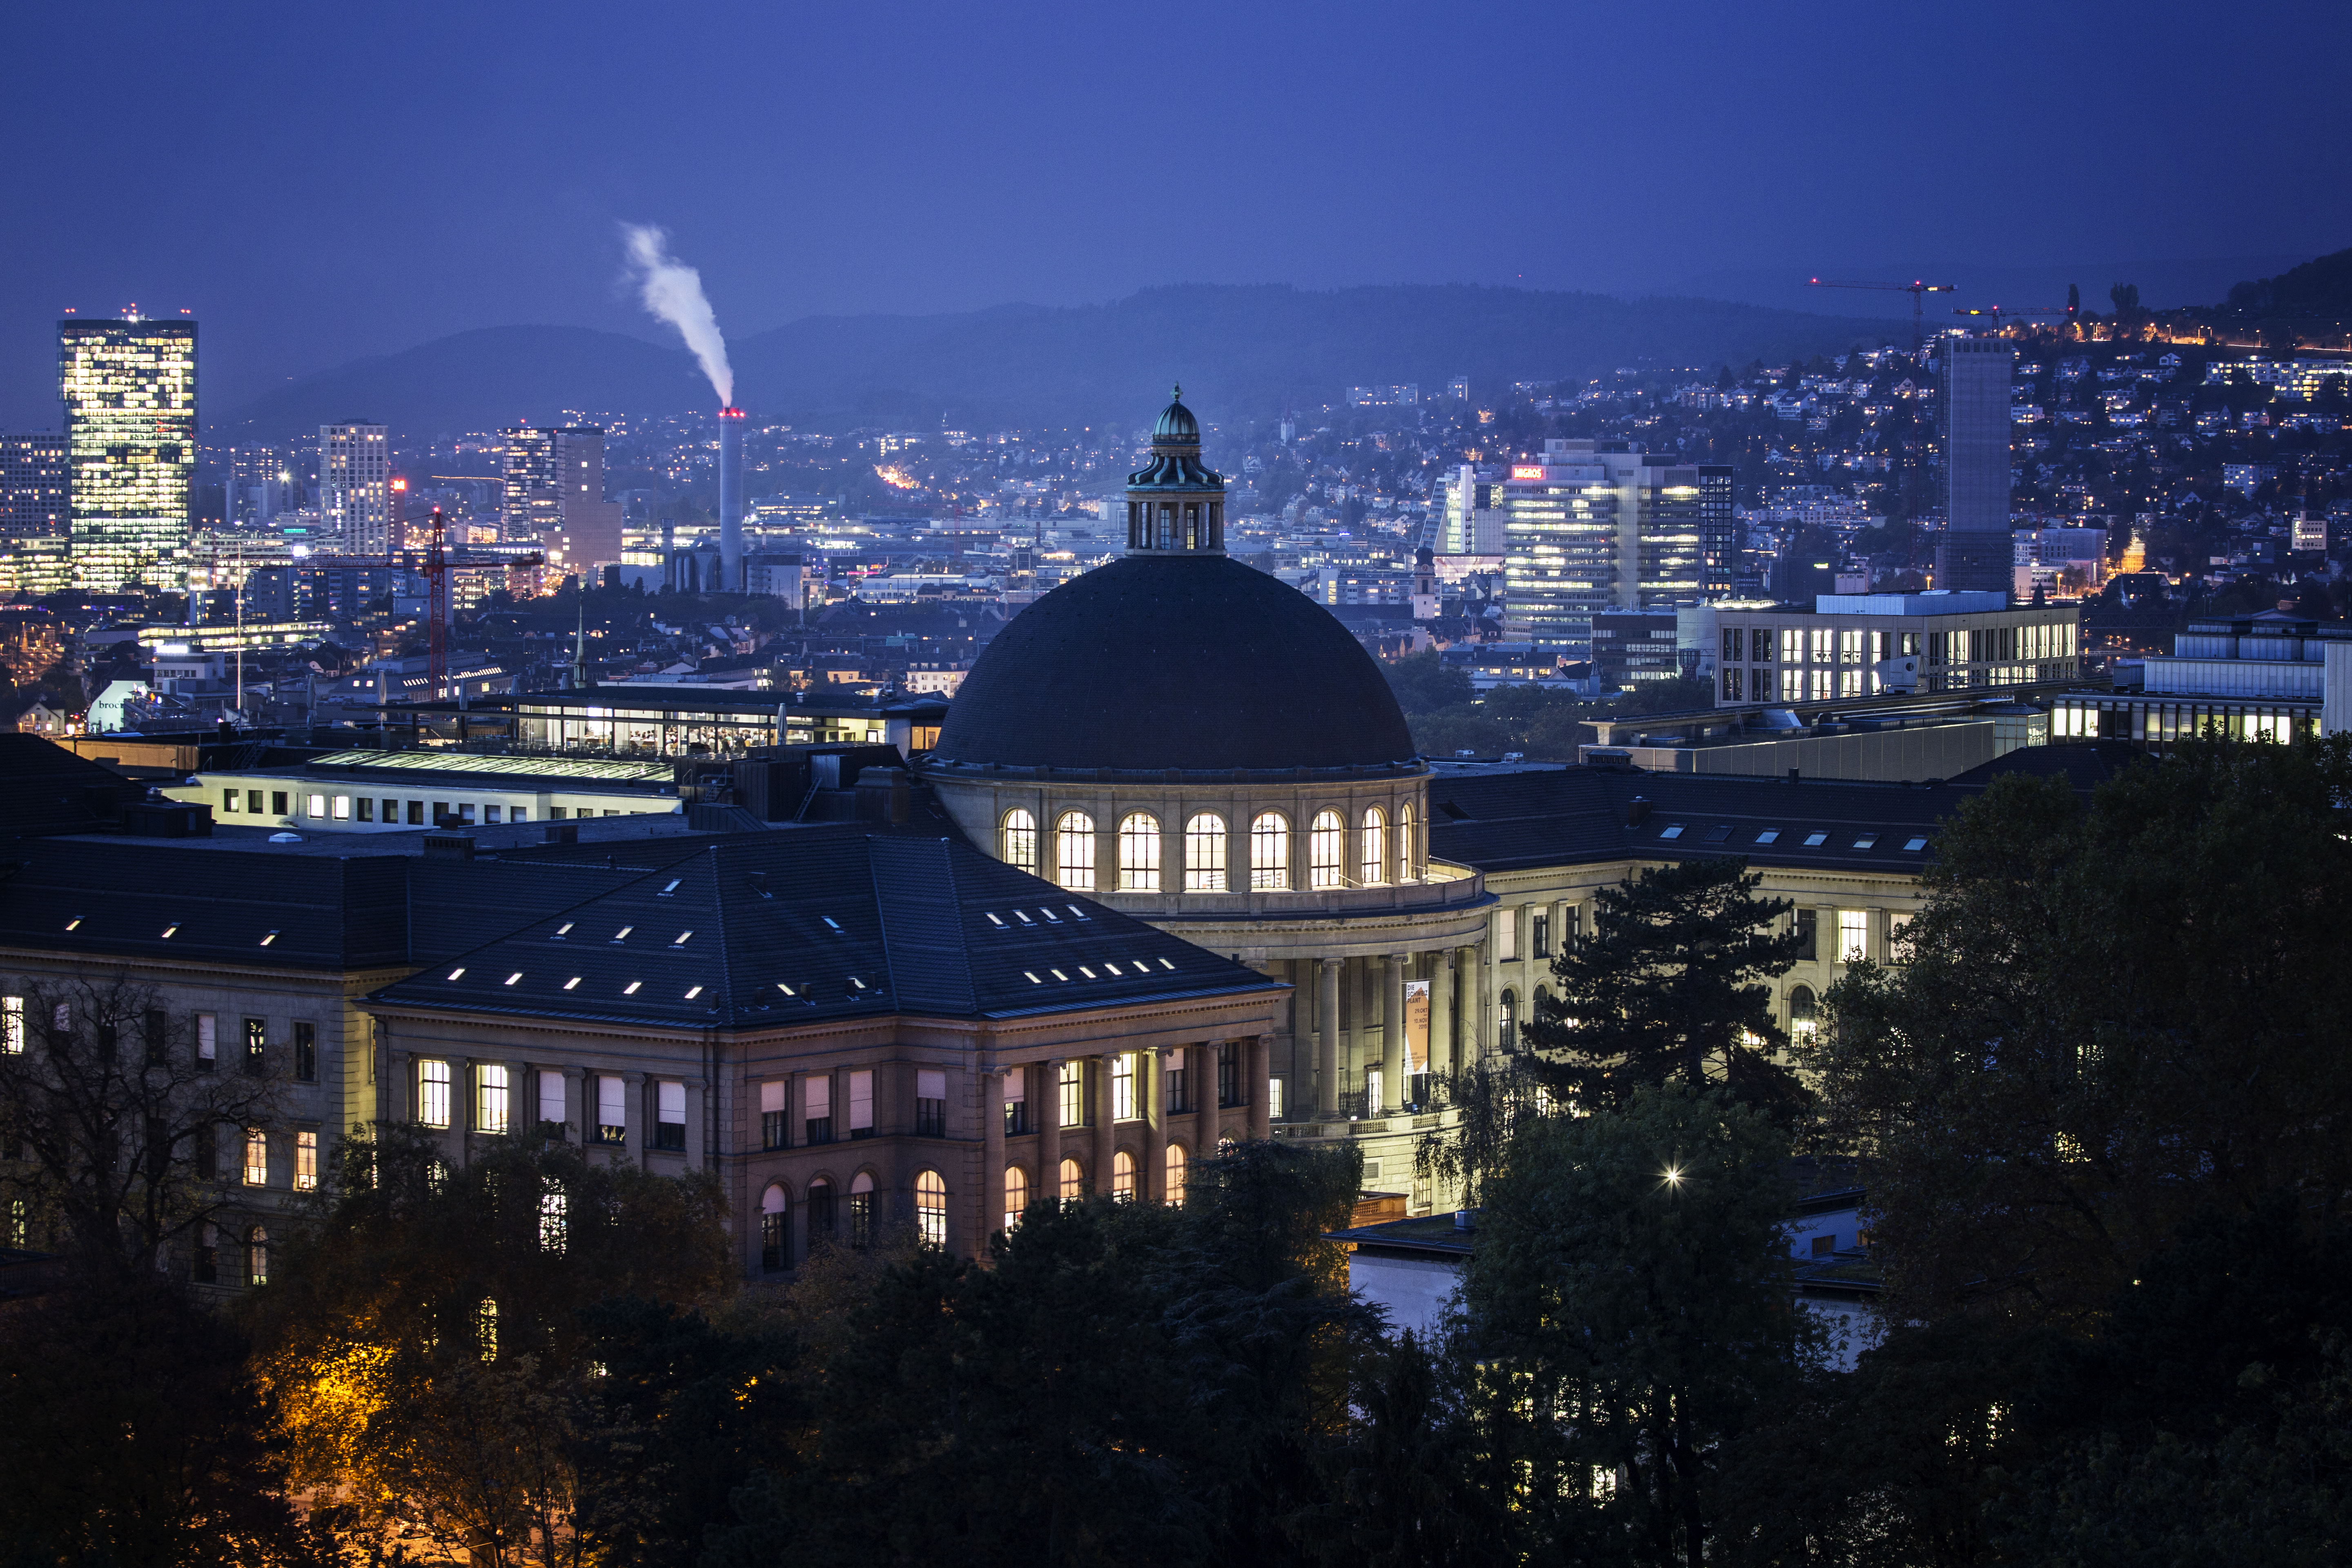 ETH_Zurich on Neoclassical Engineering